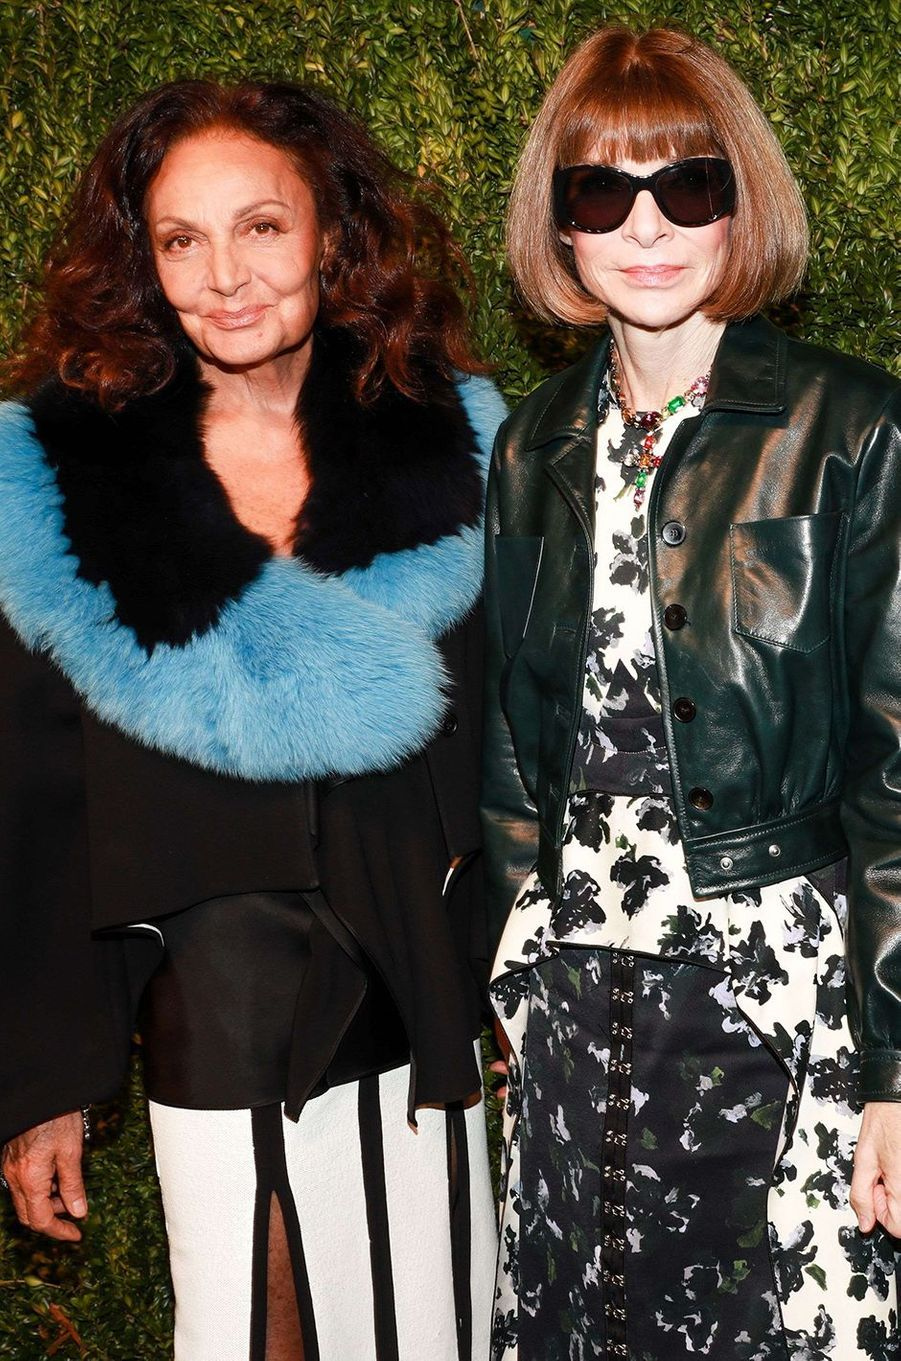 Anna Wintour avec Diane von Furstenberg aux CFDA Fashion Awards, à New York, le 6 novembre 2017.